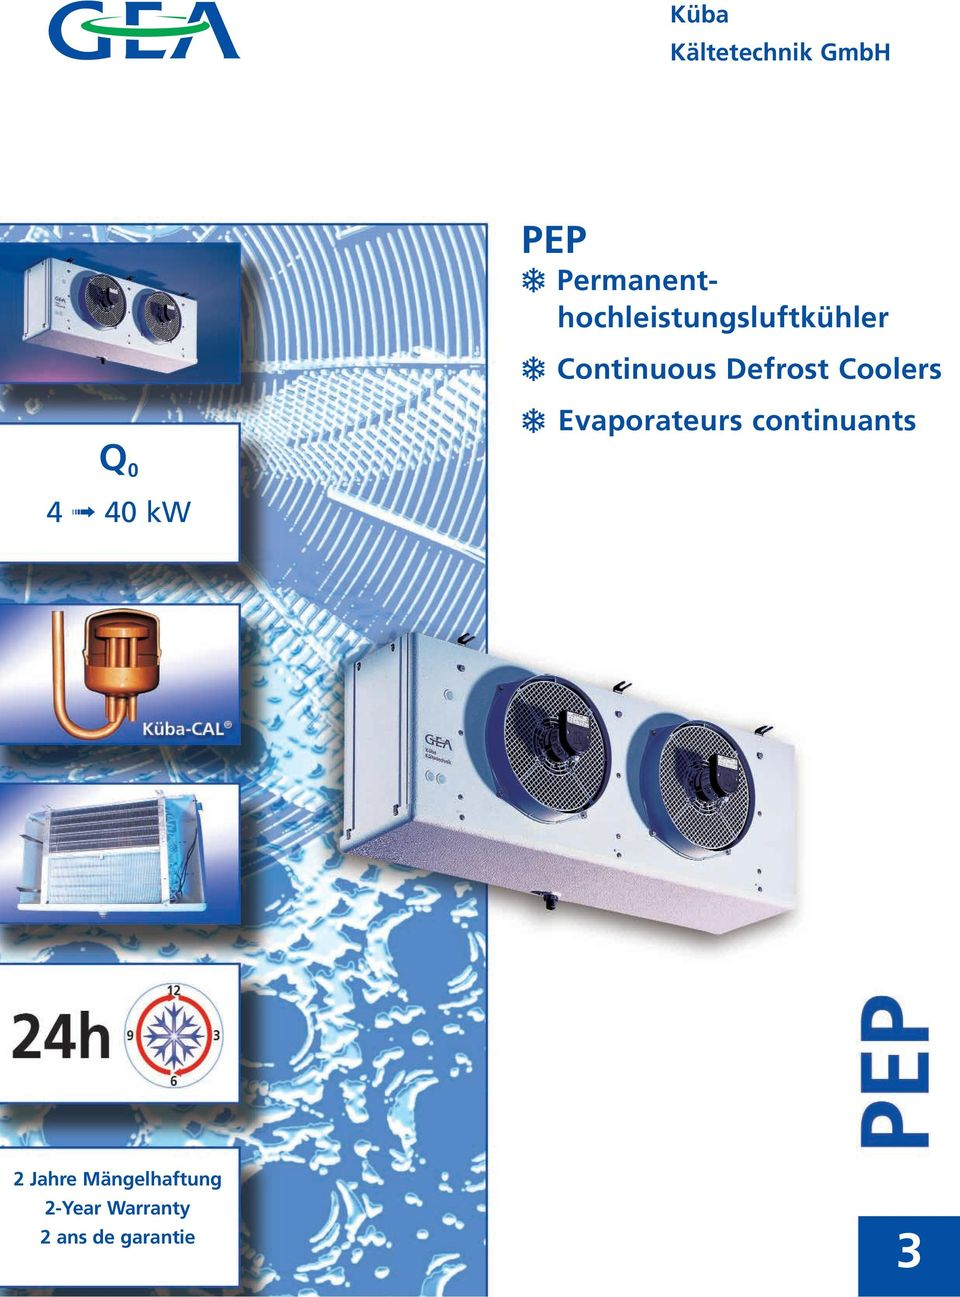 Defrost Coolers Evaporateurs continuants Q